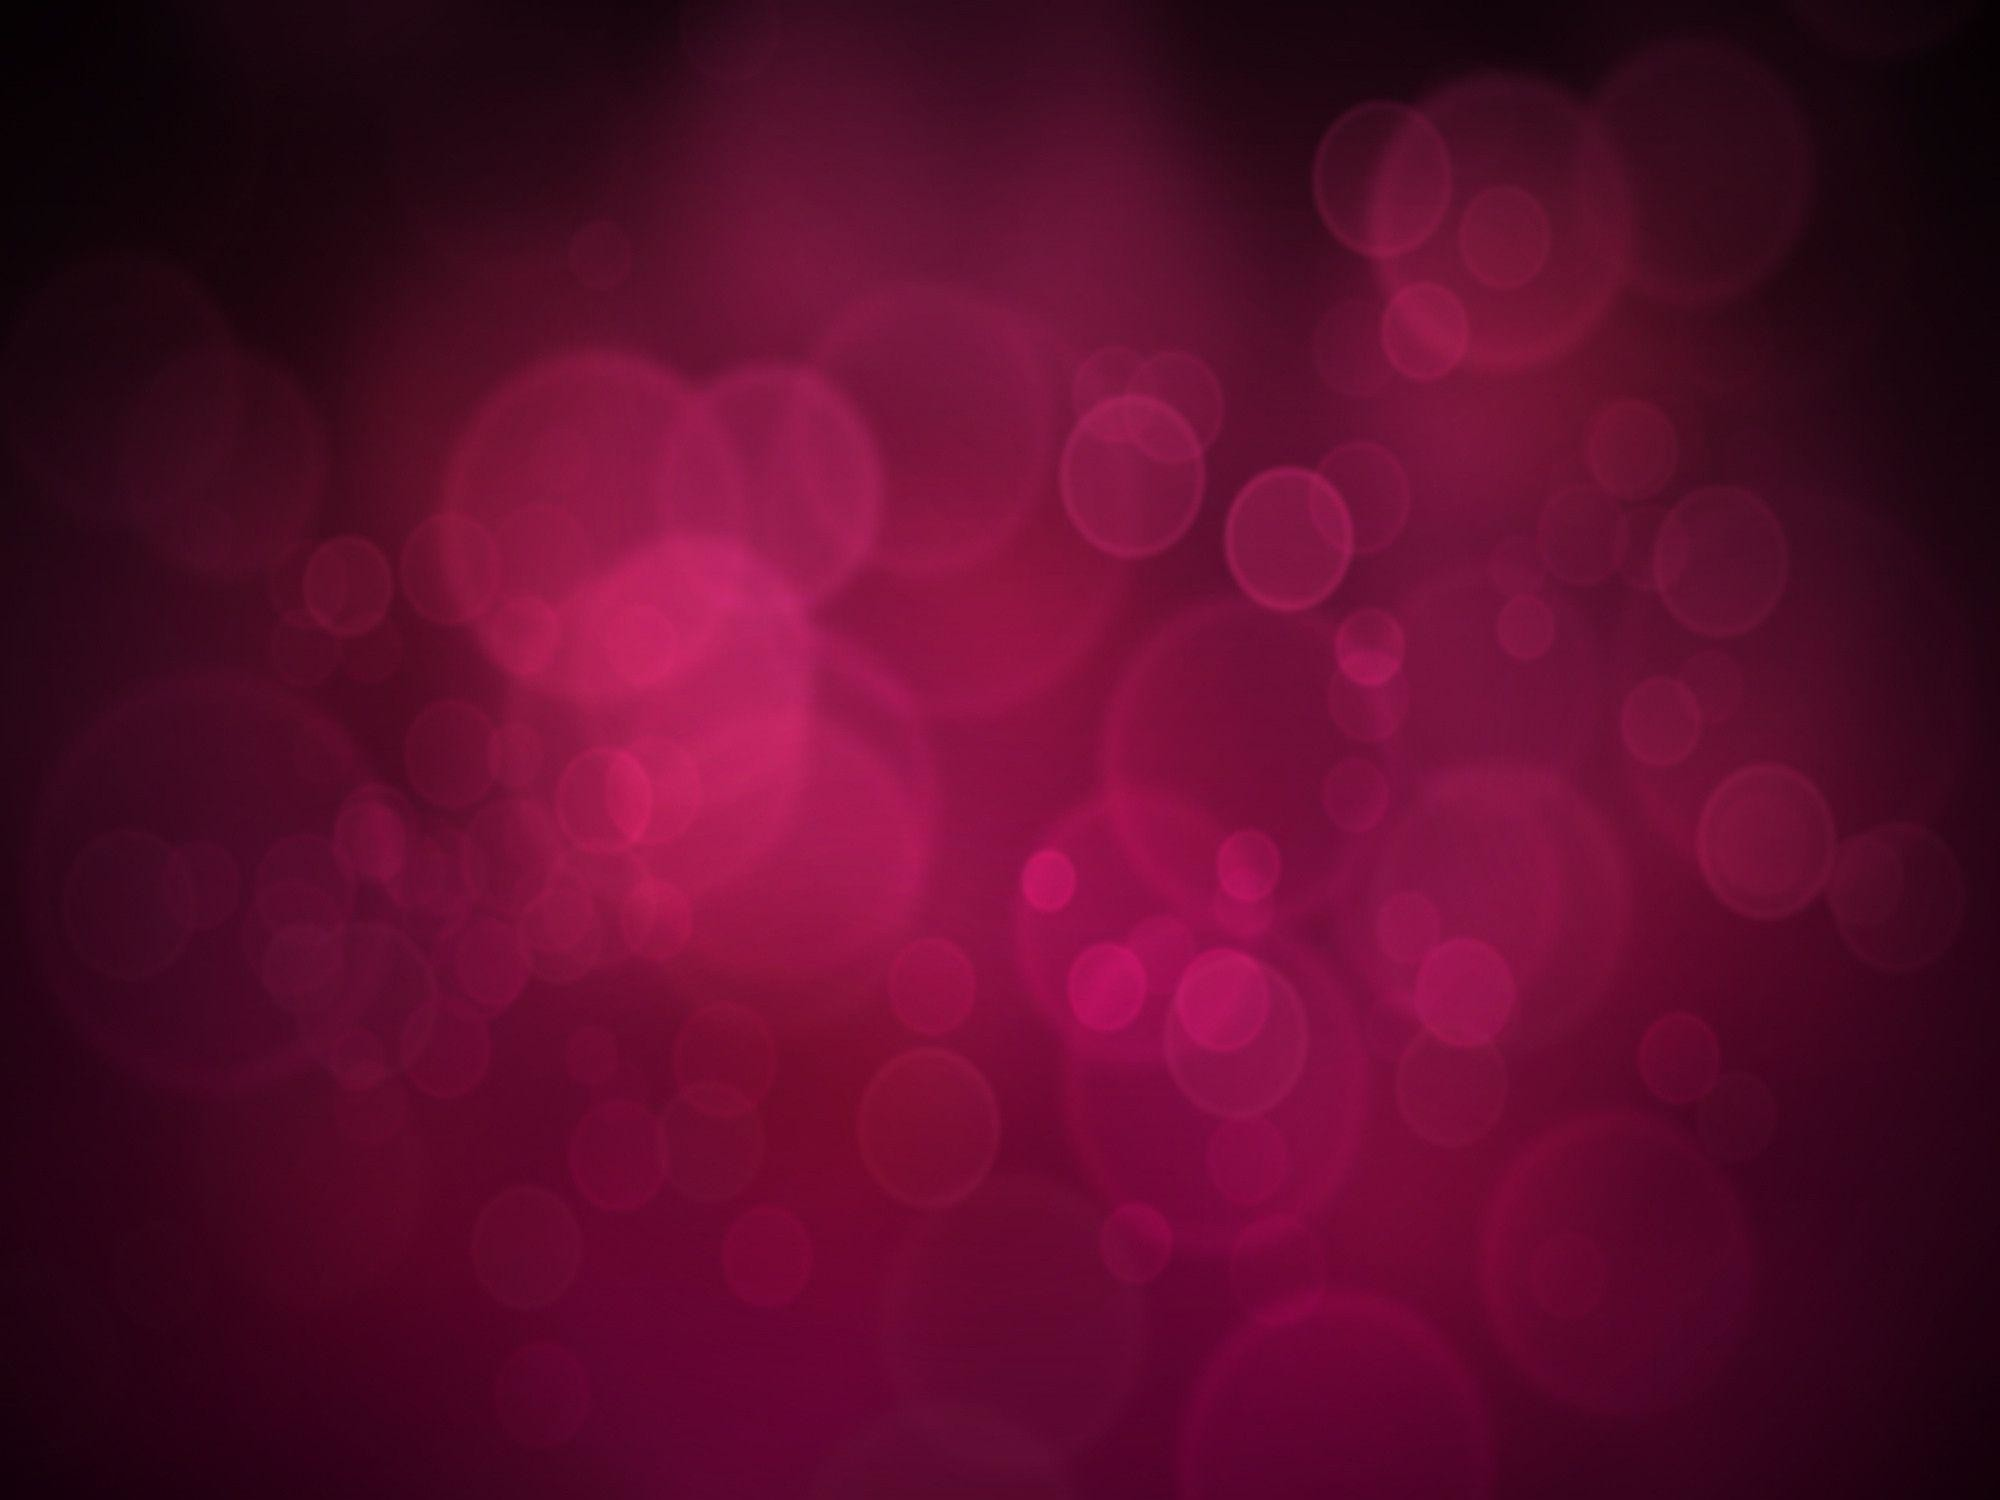 Wallpaper Points, Pink-Black Background, Bubbles, Reflections .